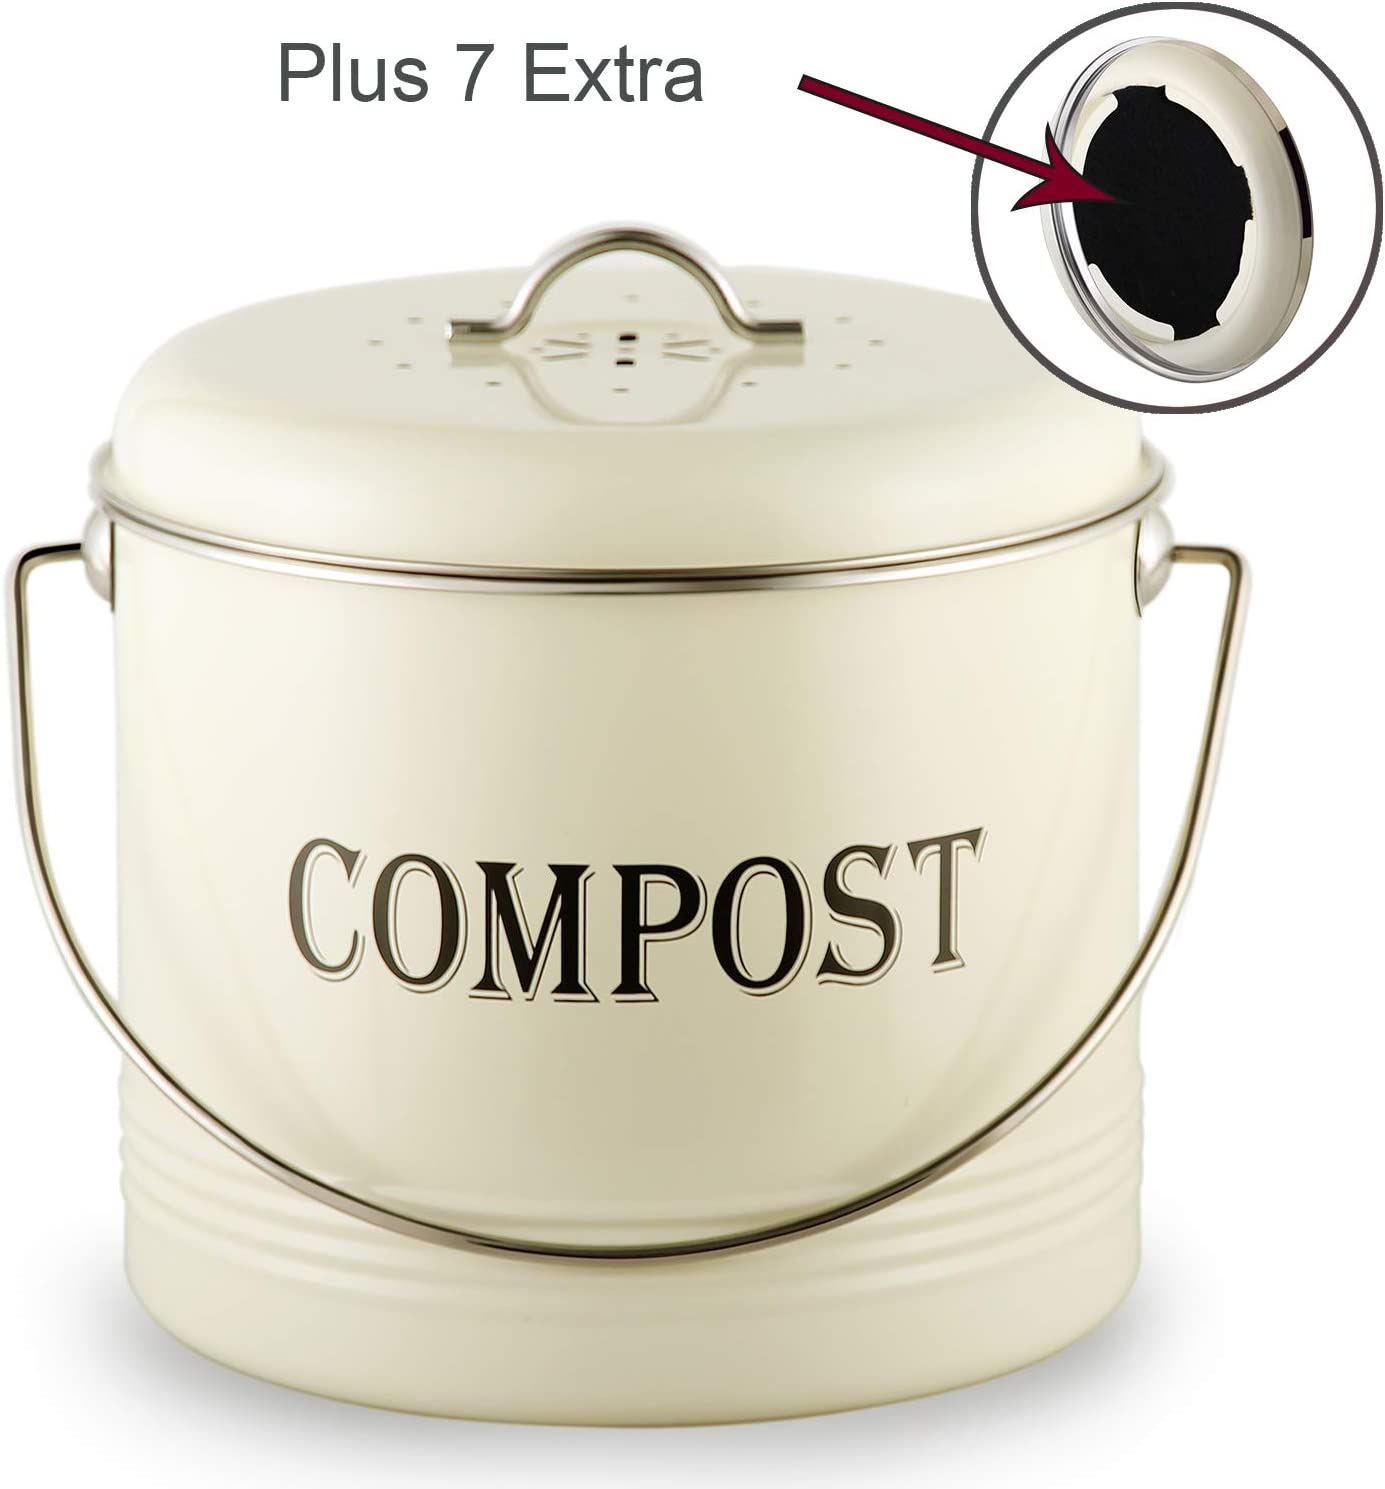 Vintage Compost Bin for Kitchen Countertop-Indoor Scraps Compost Bucket With Lid-Flies/Odor Proof Compost Container Kitchen Pail With 7 BONUS Charcoal Filters, 1.3 Gal, Beige